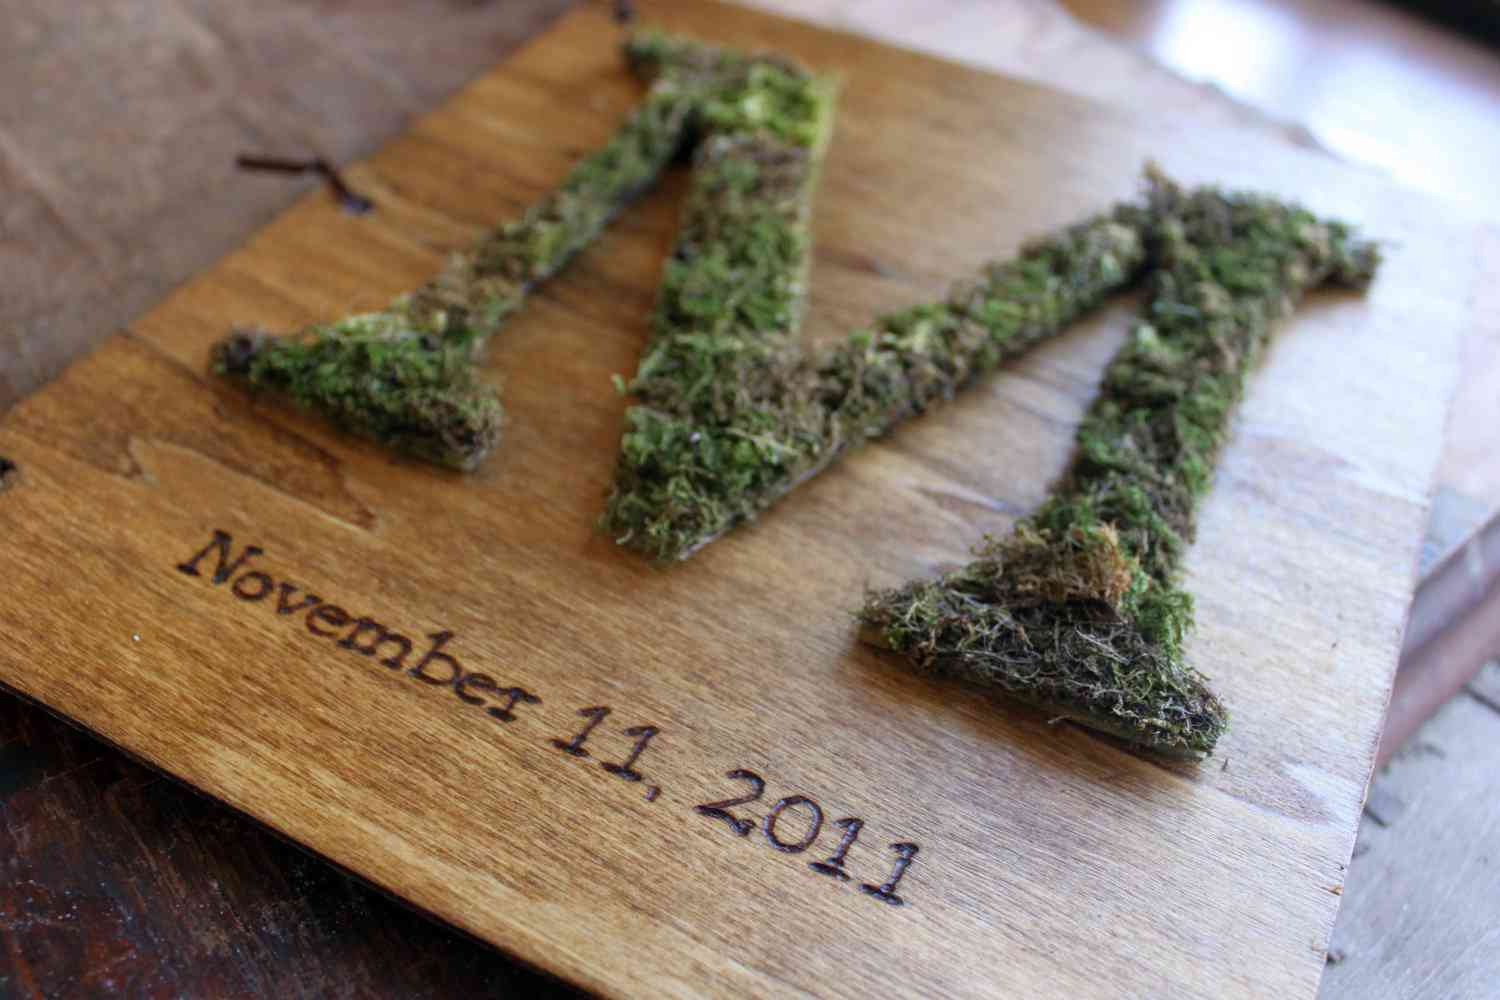 Memorable-moss-wedding-decor-for-ceremony-reception-monogram-guest-book.original